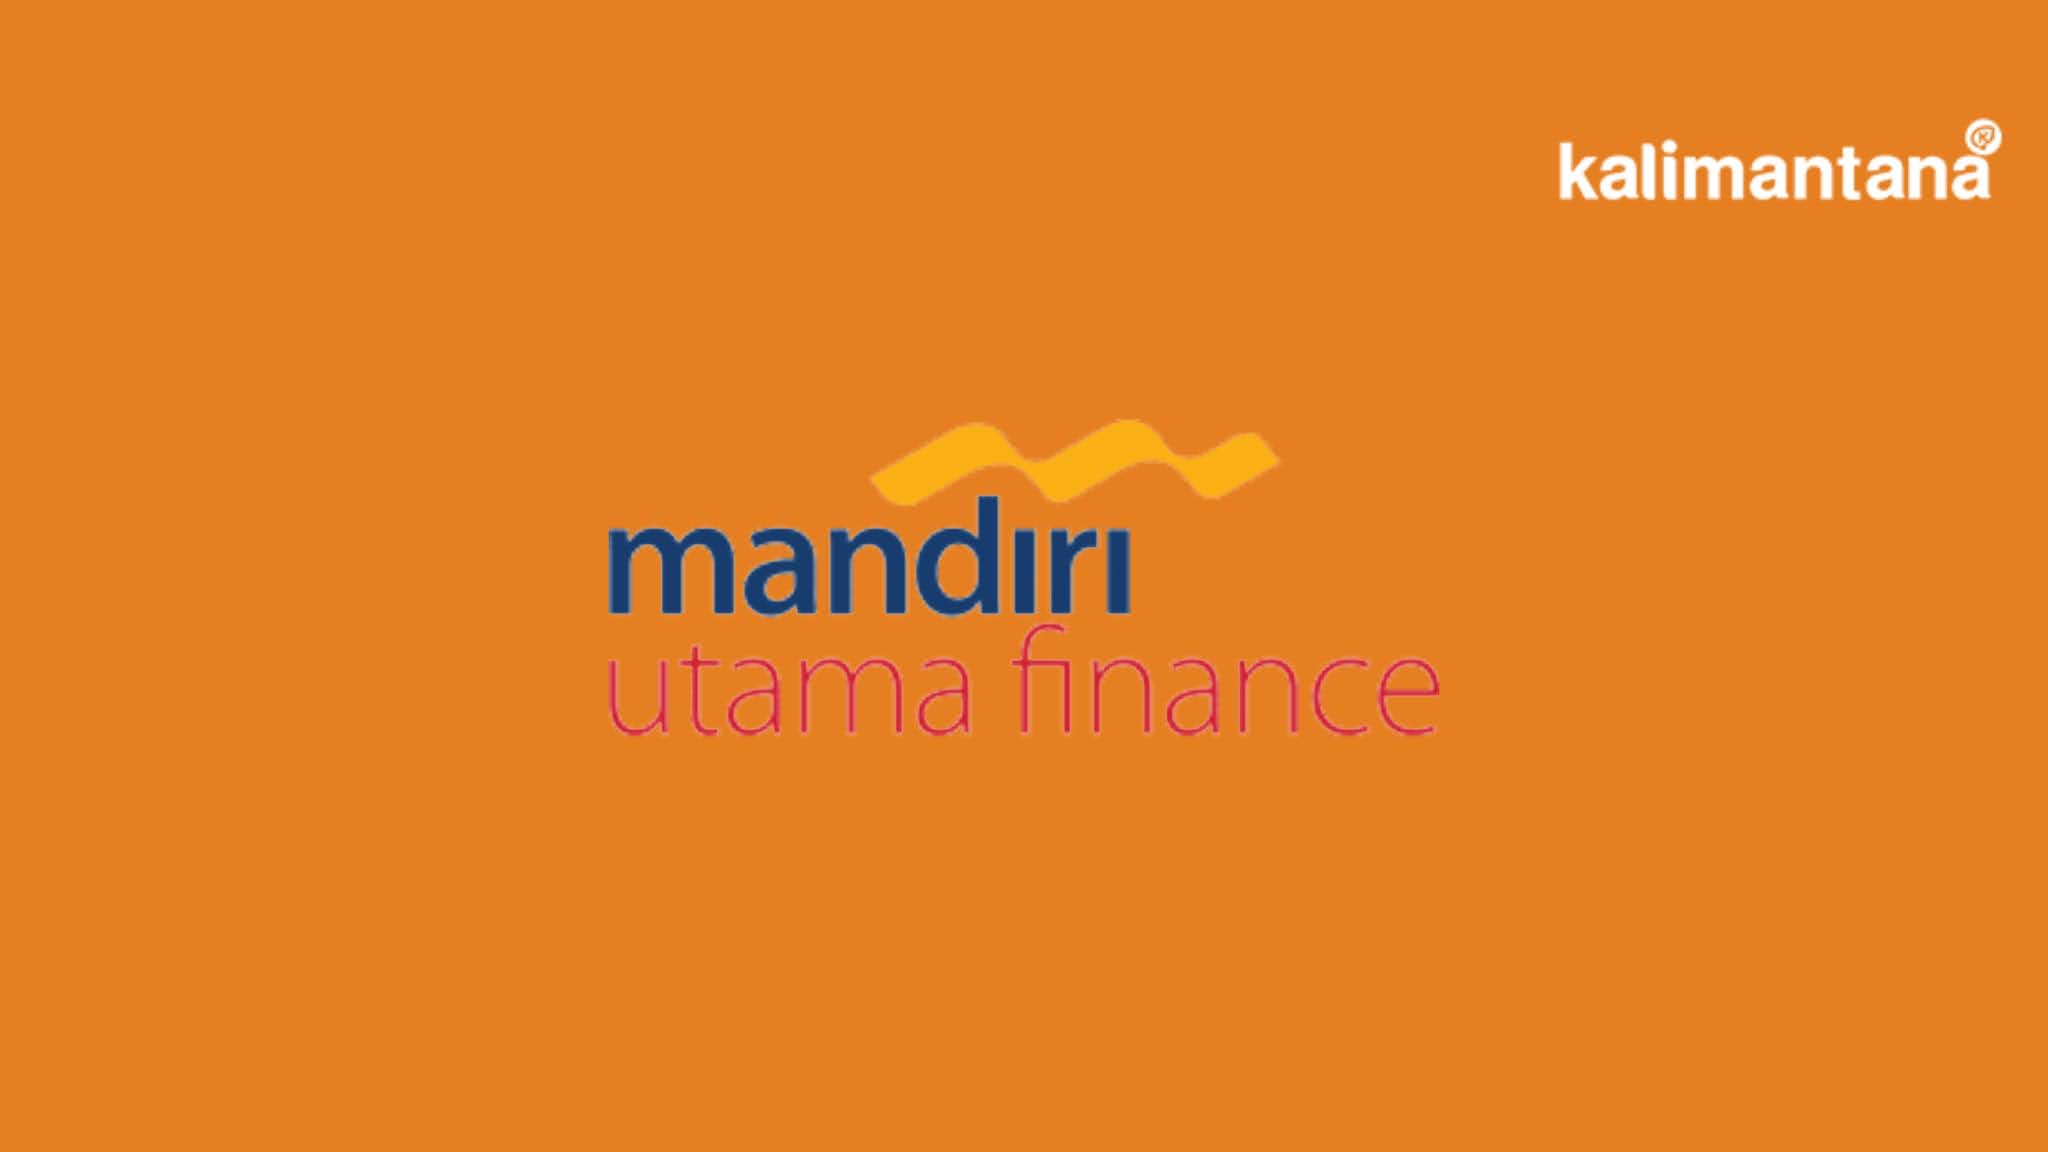 Mandiri Utama Finance